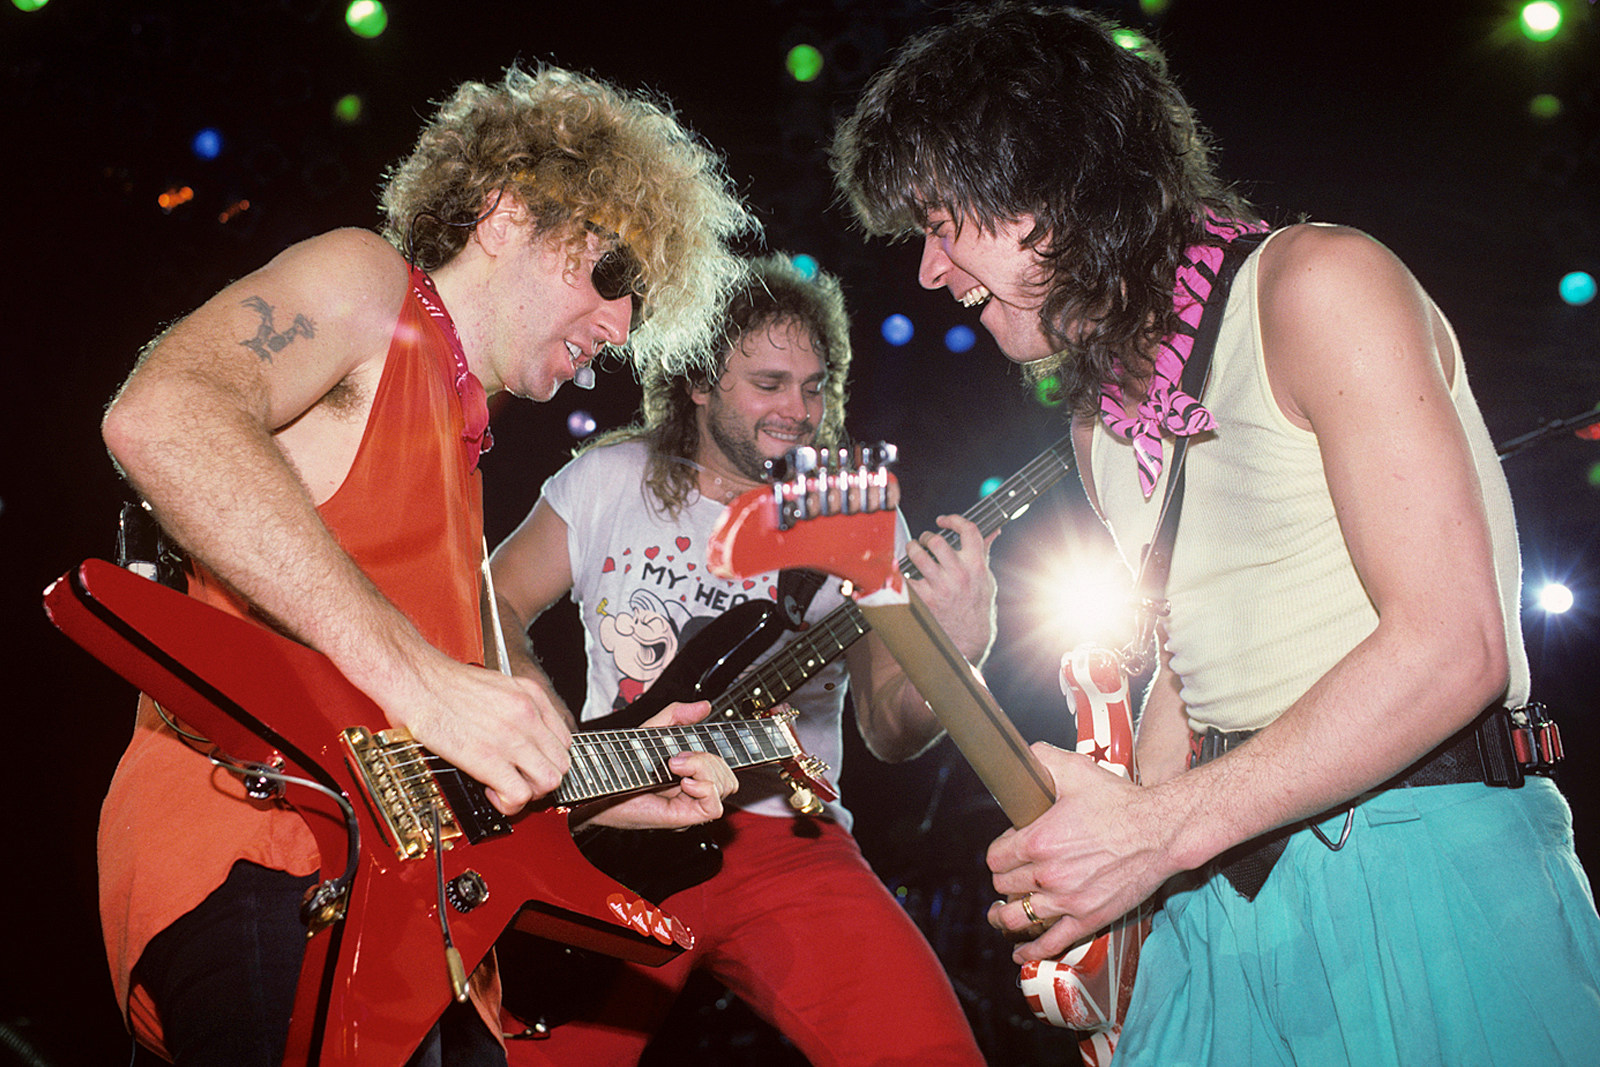 Sammy Hagar: Van Halen Camp Asked Michael Anthony About Reunion